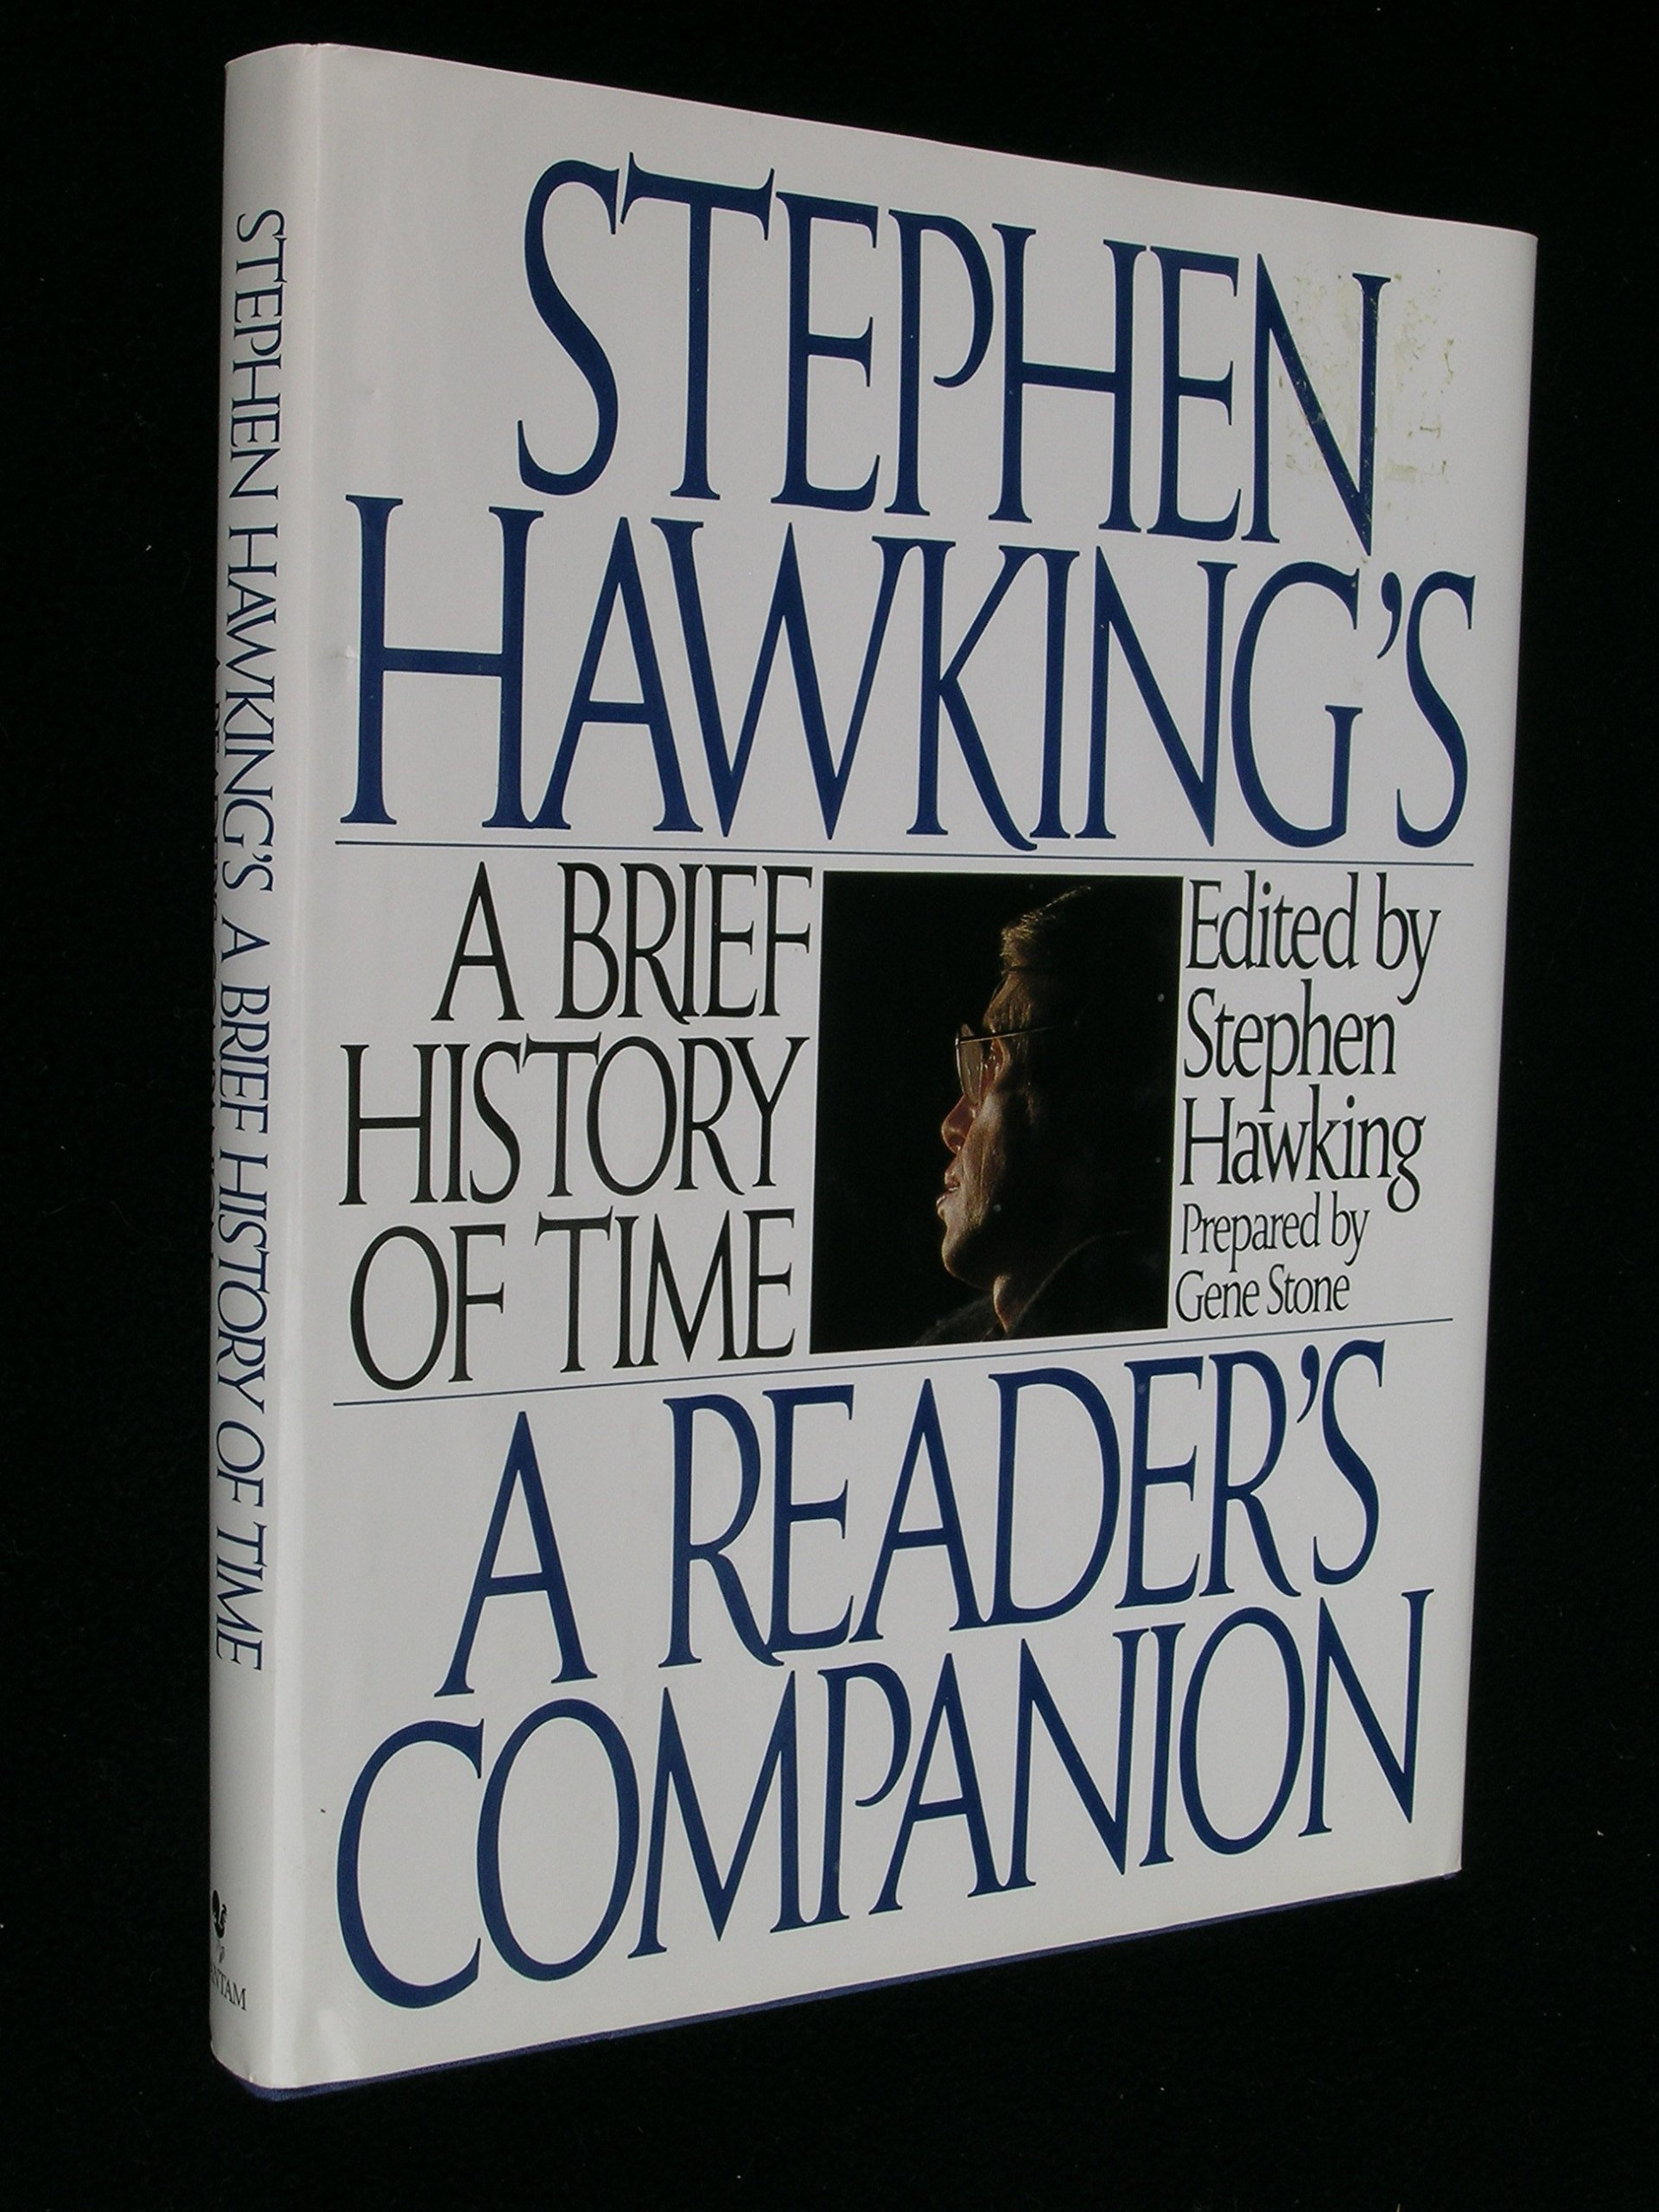 Stephen Hawking's A Brief History Of Time: A Reader'spanion: Stephen  Hawking: 9780553077728: Amazon: Books